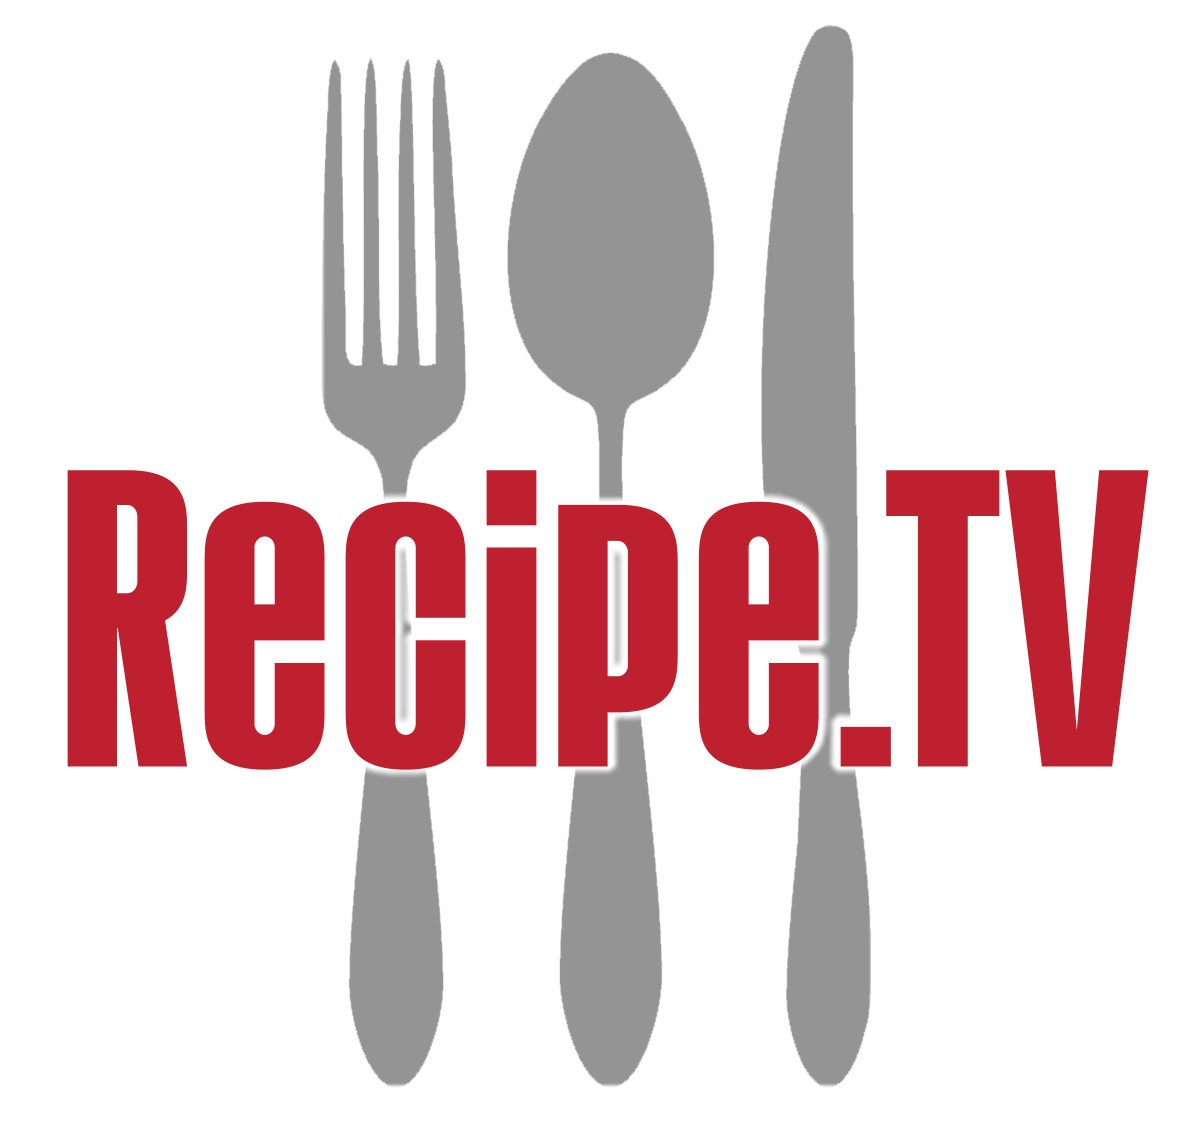 Dish Cooks Up Carriage Deal For Recipe.TV - Multichannel